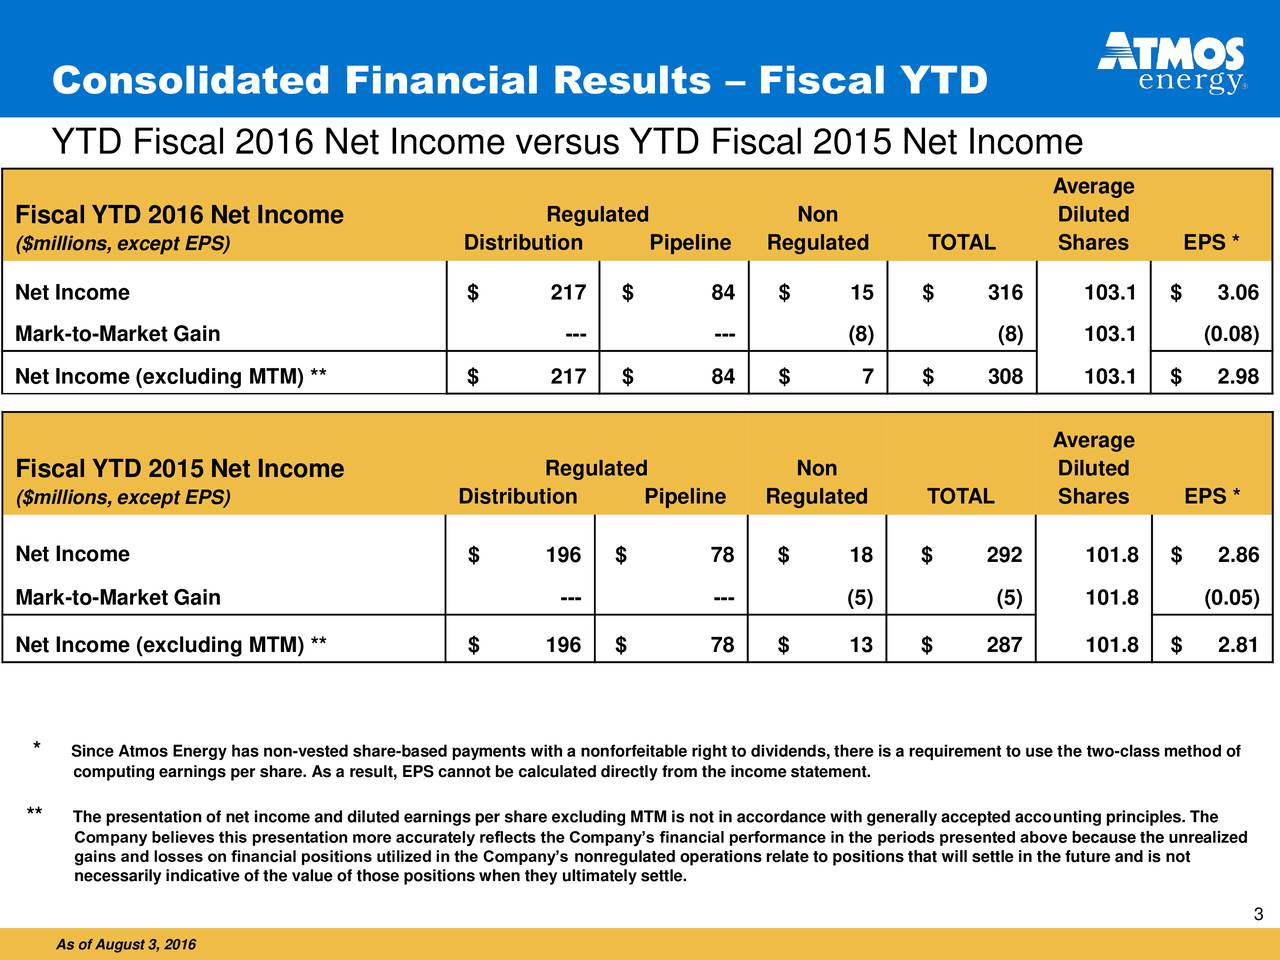 YTD Fiscal 2016 Net Income versus YTD Fiscal 2015 Net Income Average Fiscal YTD 2016 Net Income Regulated Non Diluted ($millions, except EPS) Distribution Pipeline Regulated TOTAL Shares EPS * Net Income $ 217 $ 84 $ 15 $ 316 103.1 $ 3.06 Mark-to-Market Gain --- --- (8) (8) 103.1 (0.08) Net Income (excluding MTM) ** $ 217 $ 84 $ 7 $ 308 103.1 $ 2.98 Average Fiscal YTD 2015 Net Income Regulated Non Diluted ($millions, except EPS) Distribution Pipeline Regulated TOTAL Shares EPS * Net Income $ 196 $ 78 $ 18 $ 292 101.8 $ 2.86 Mark-to-Market Gain --- --- (5) (5) 101.8 (0.05) Net Income (excluding MTM) ** $ 196 $ 78 $ 13 $ 287 101.8 $ 2.81 * Since Atmos Energy has non-vested share-based payments with a nonforfeitable right to dividends, there is a requirement to use the two-class method of computing earnings per share. As a result, EPS cannot be calculated directly from the income statement. ** Company believes this presentation more accurately reflects the Companys financial performance in the periods presented above because the unrealized gains and losses on financial positions utilized in the Companys nonregulated operations relate to positions that will settle in the future and is not necessarily indicative of the value of those positions when they ultimately settle. 3